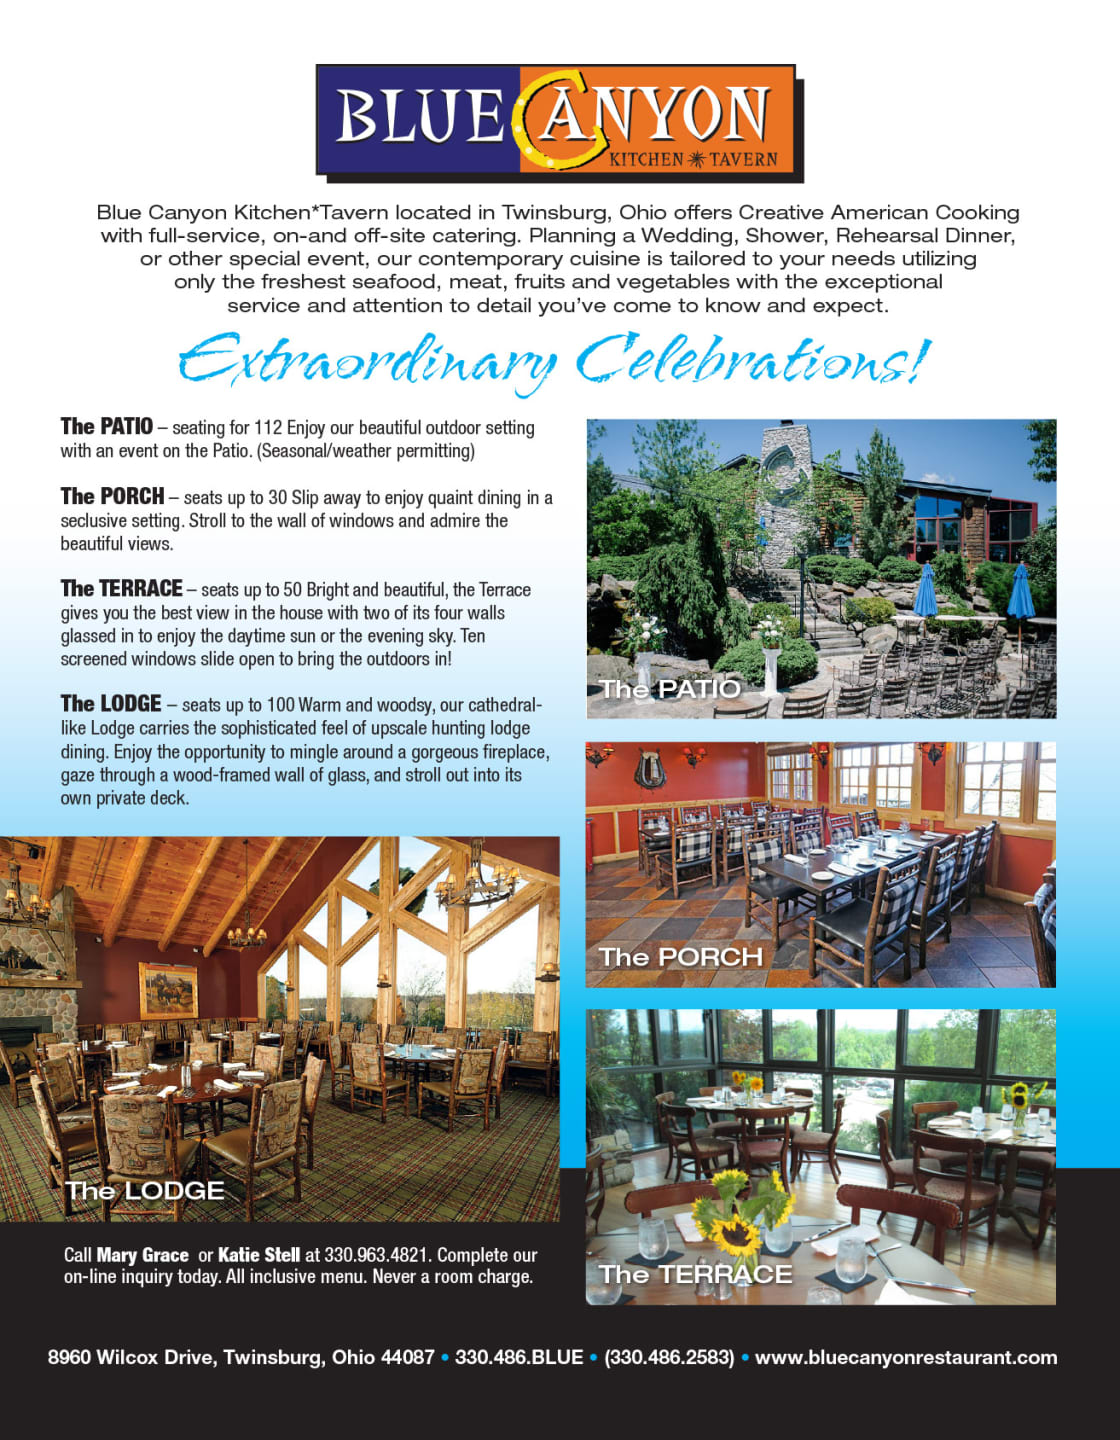 Blue Canyon Extraordinary Celebrations flyer